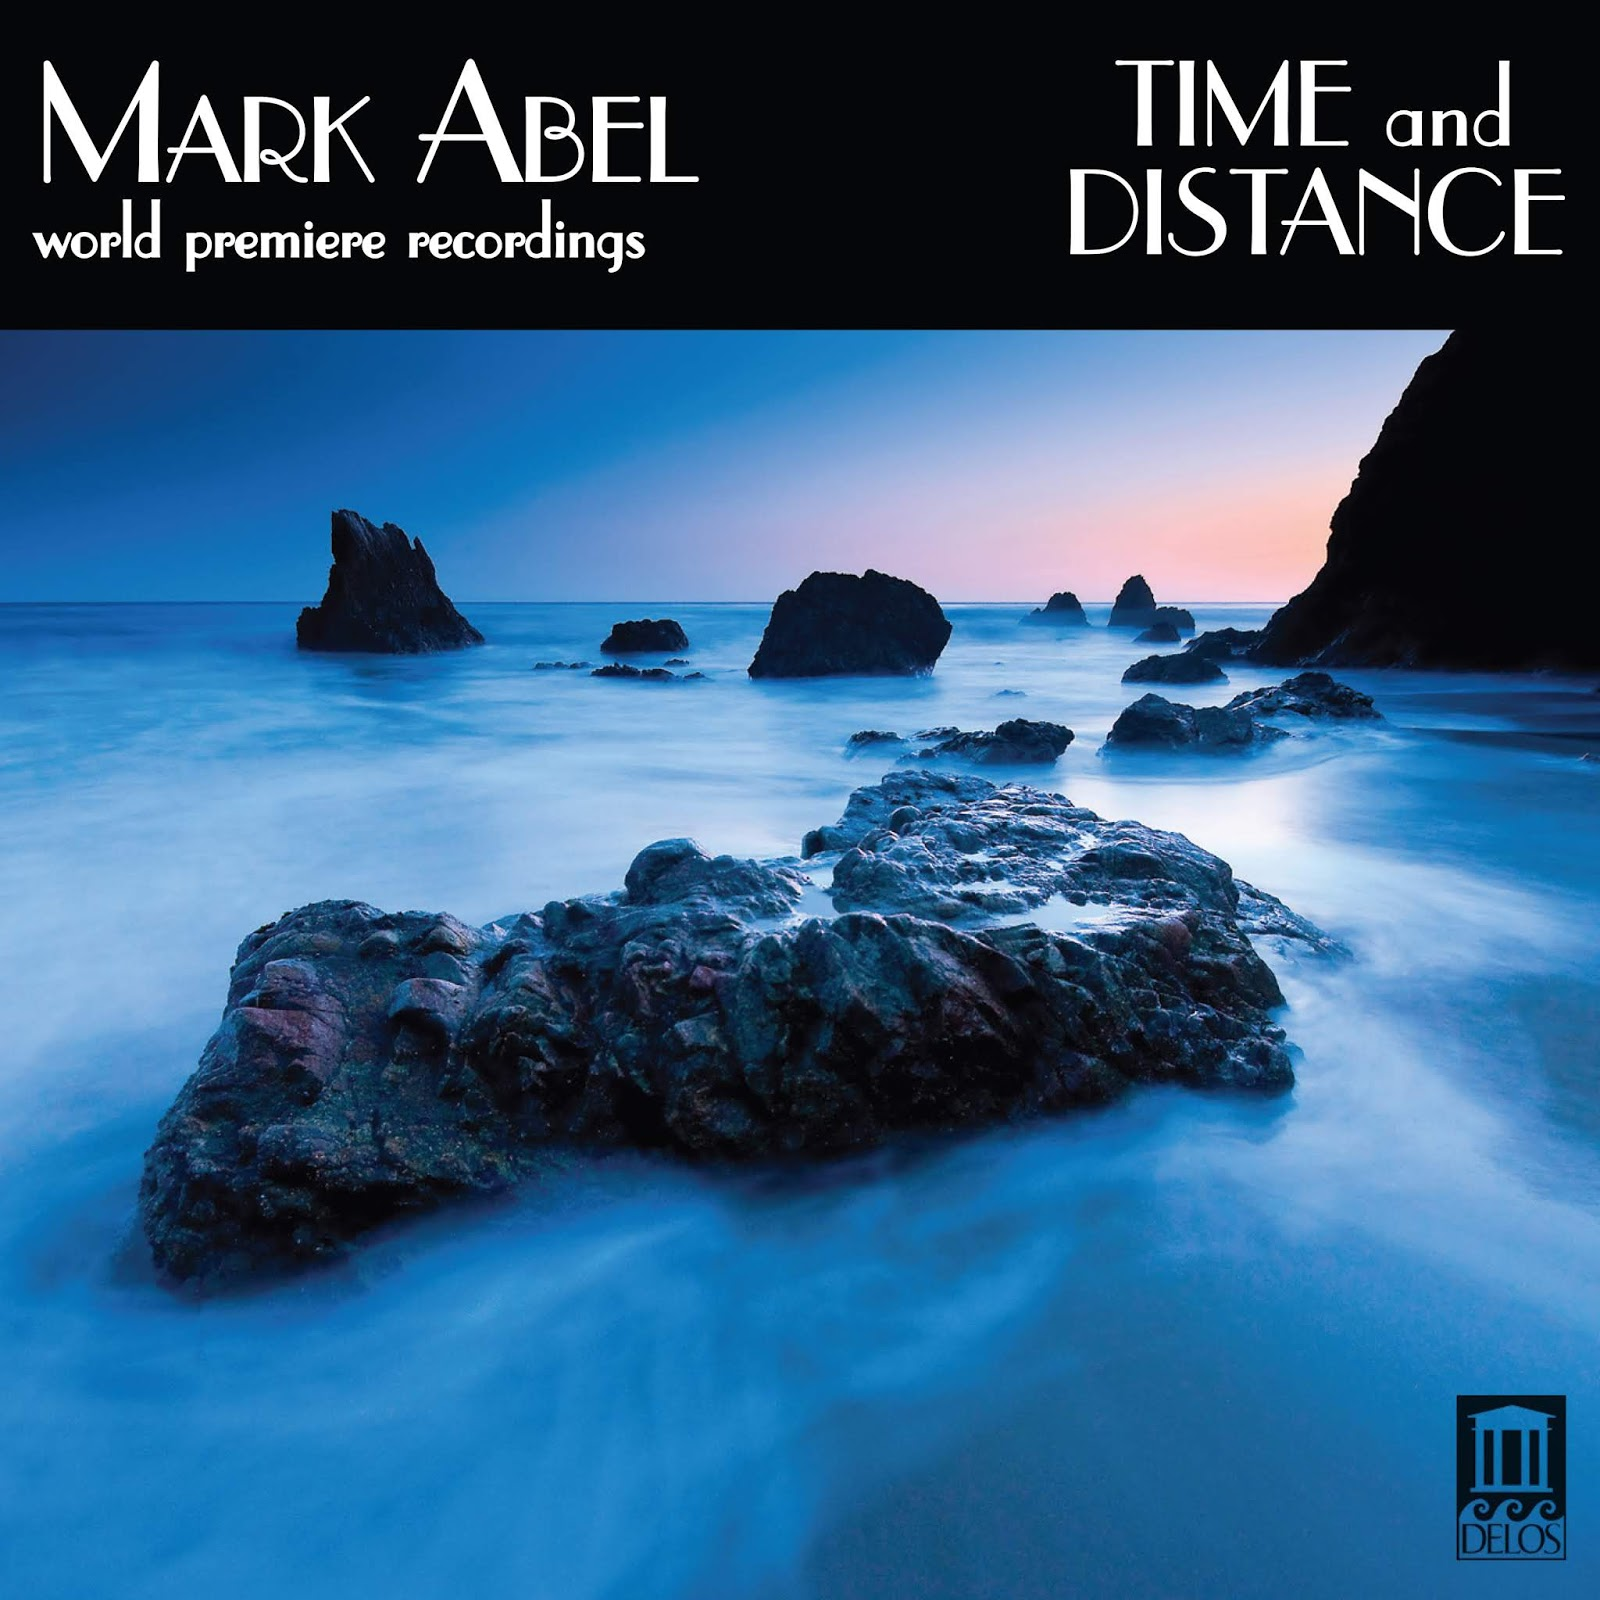 IN REVIEW: Mark Abel - TIME AND DISTANCE (Delos DE 3550)